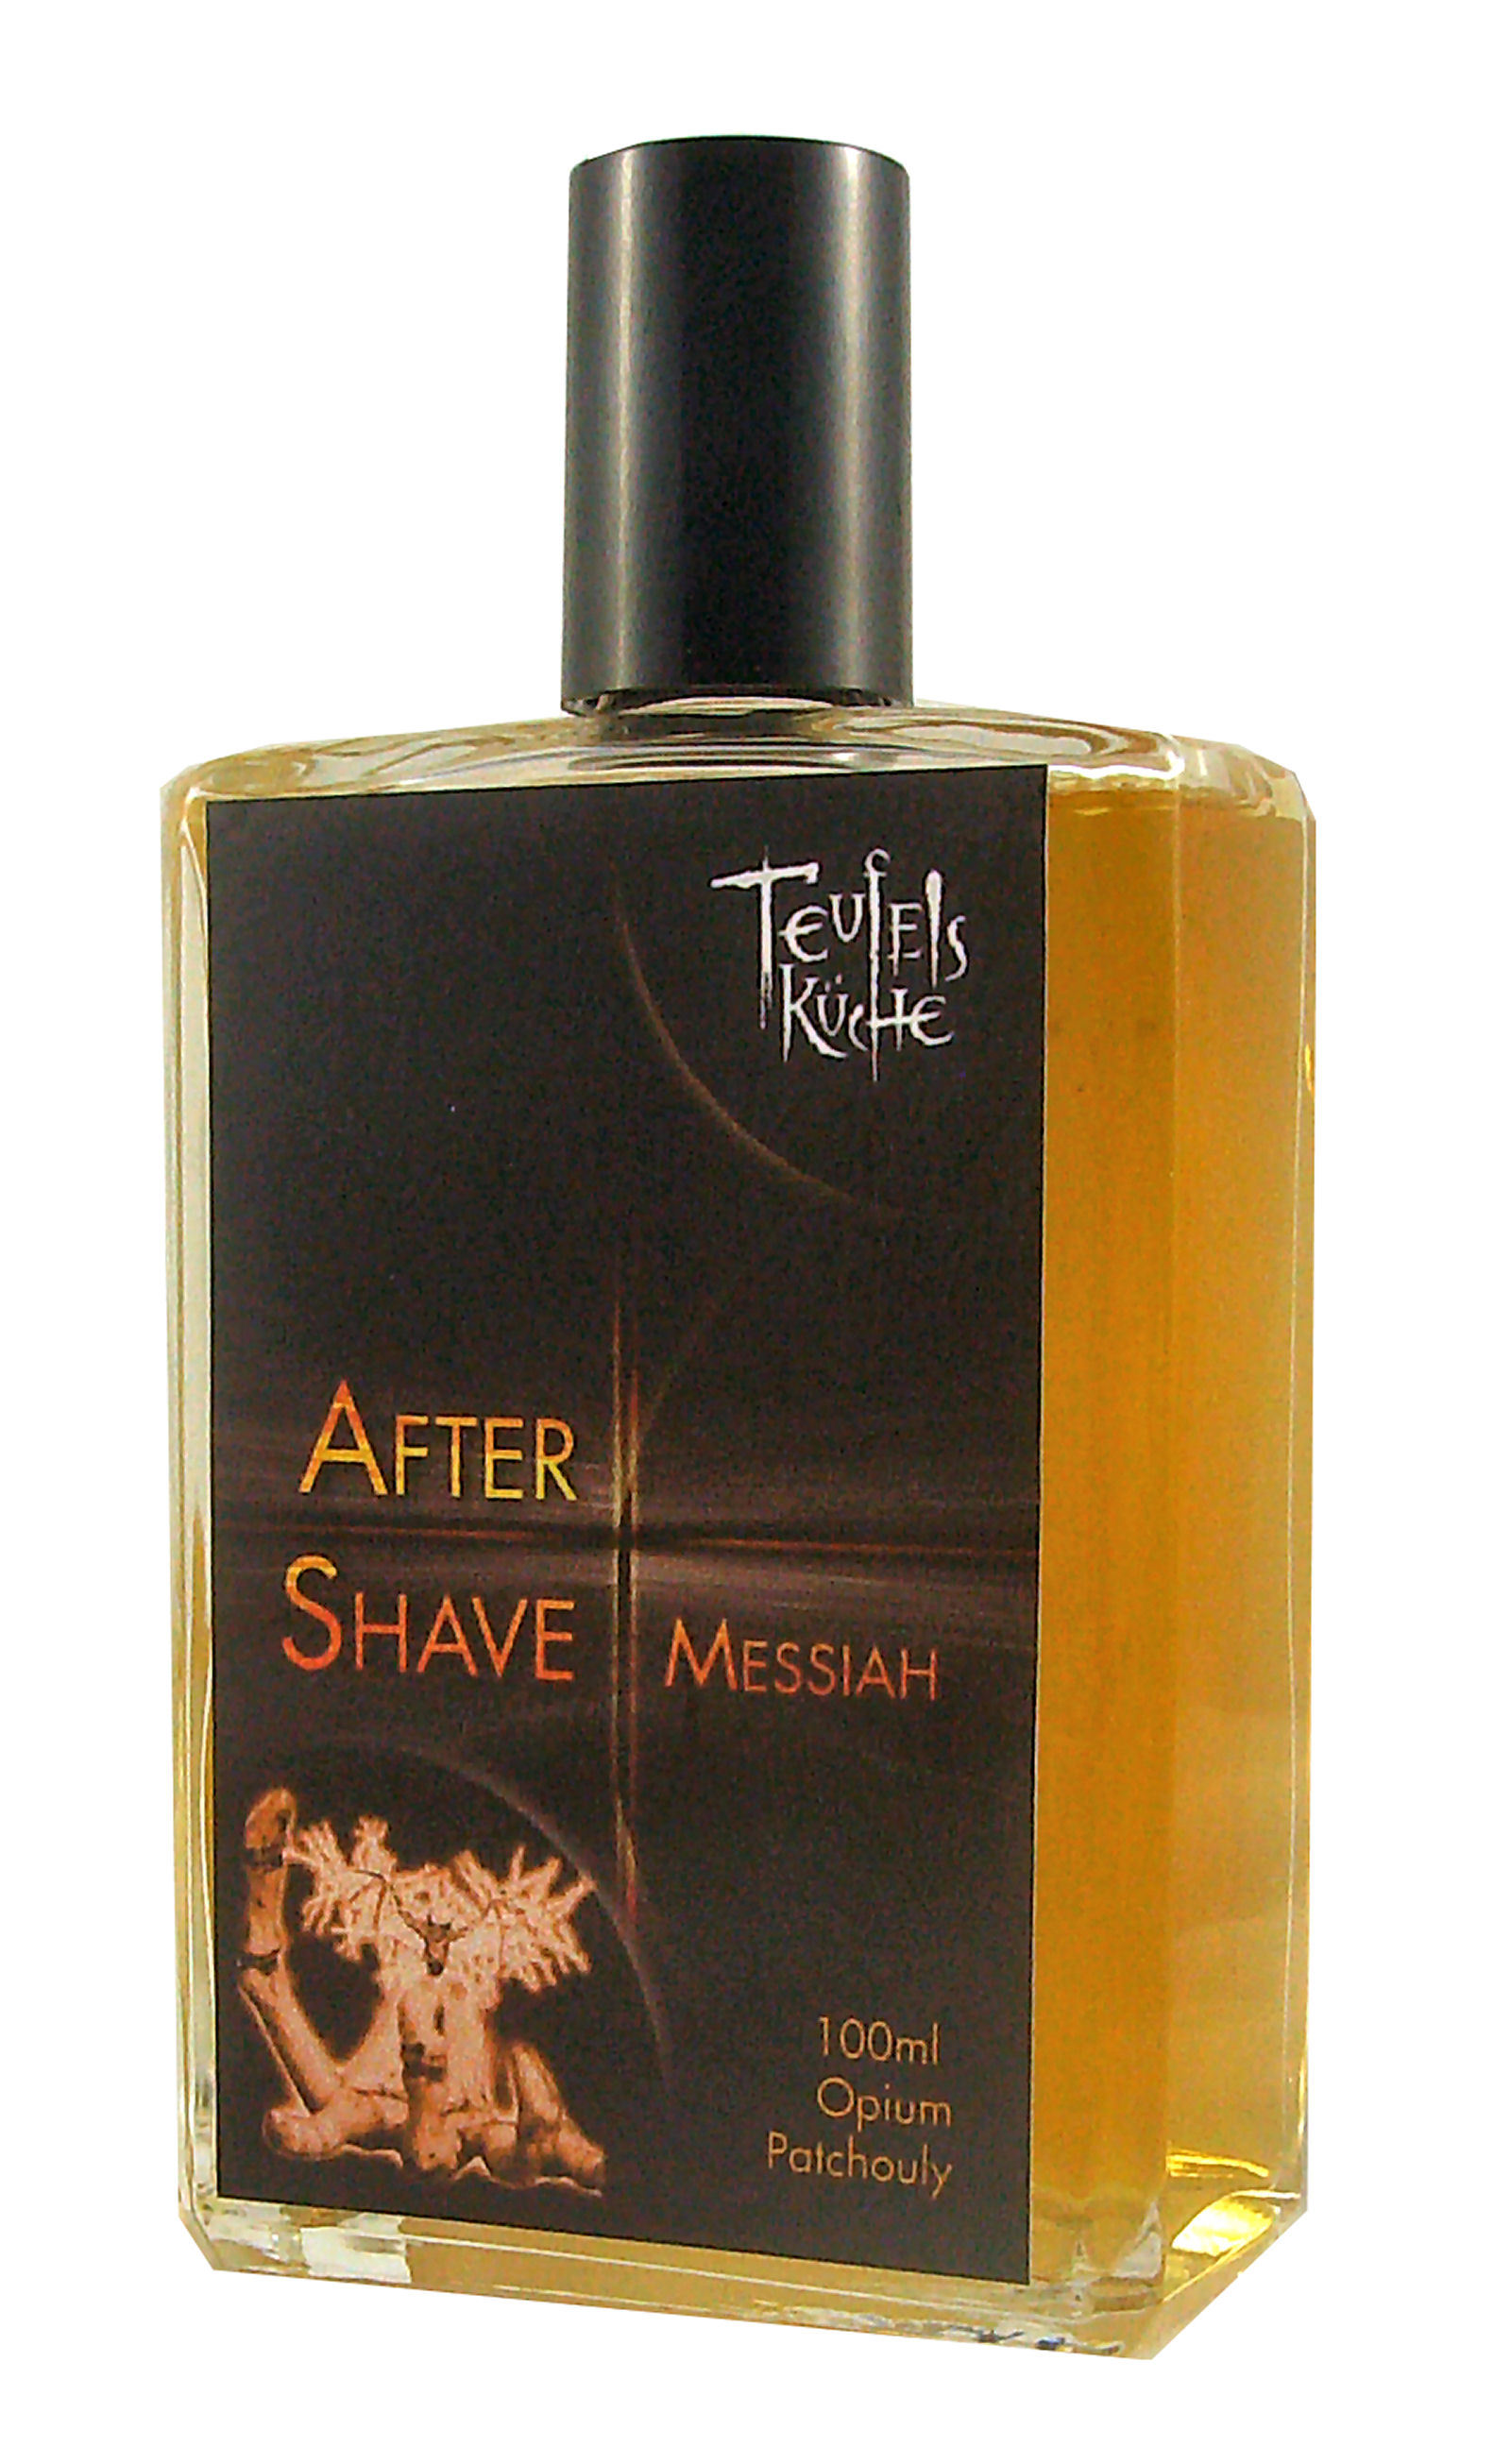 After Shave Patchouli Messiah